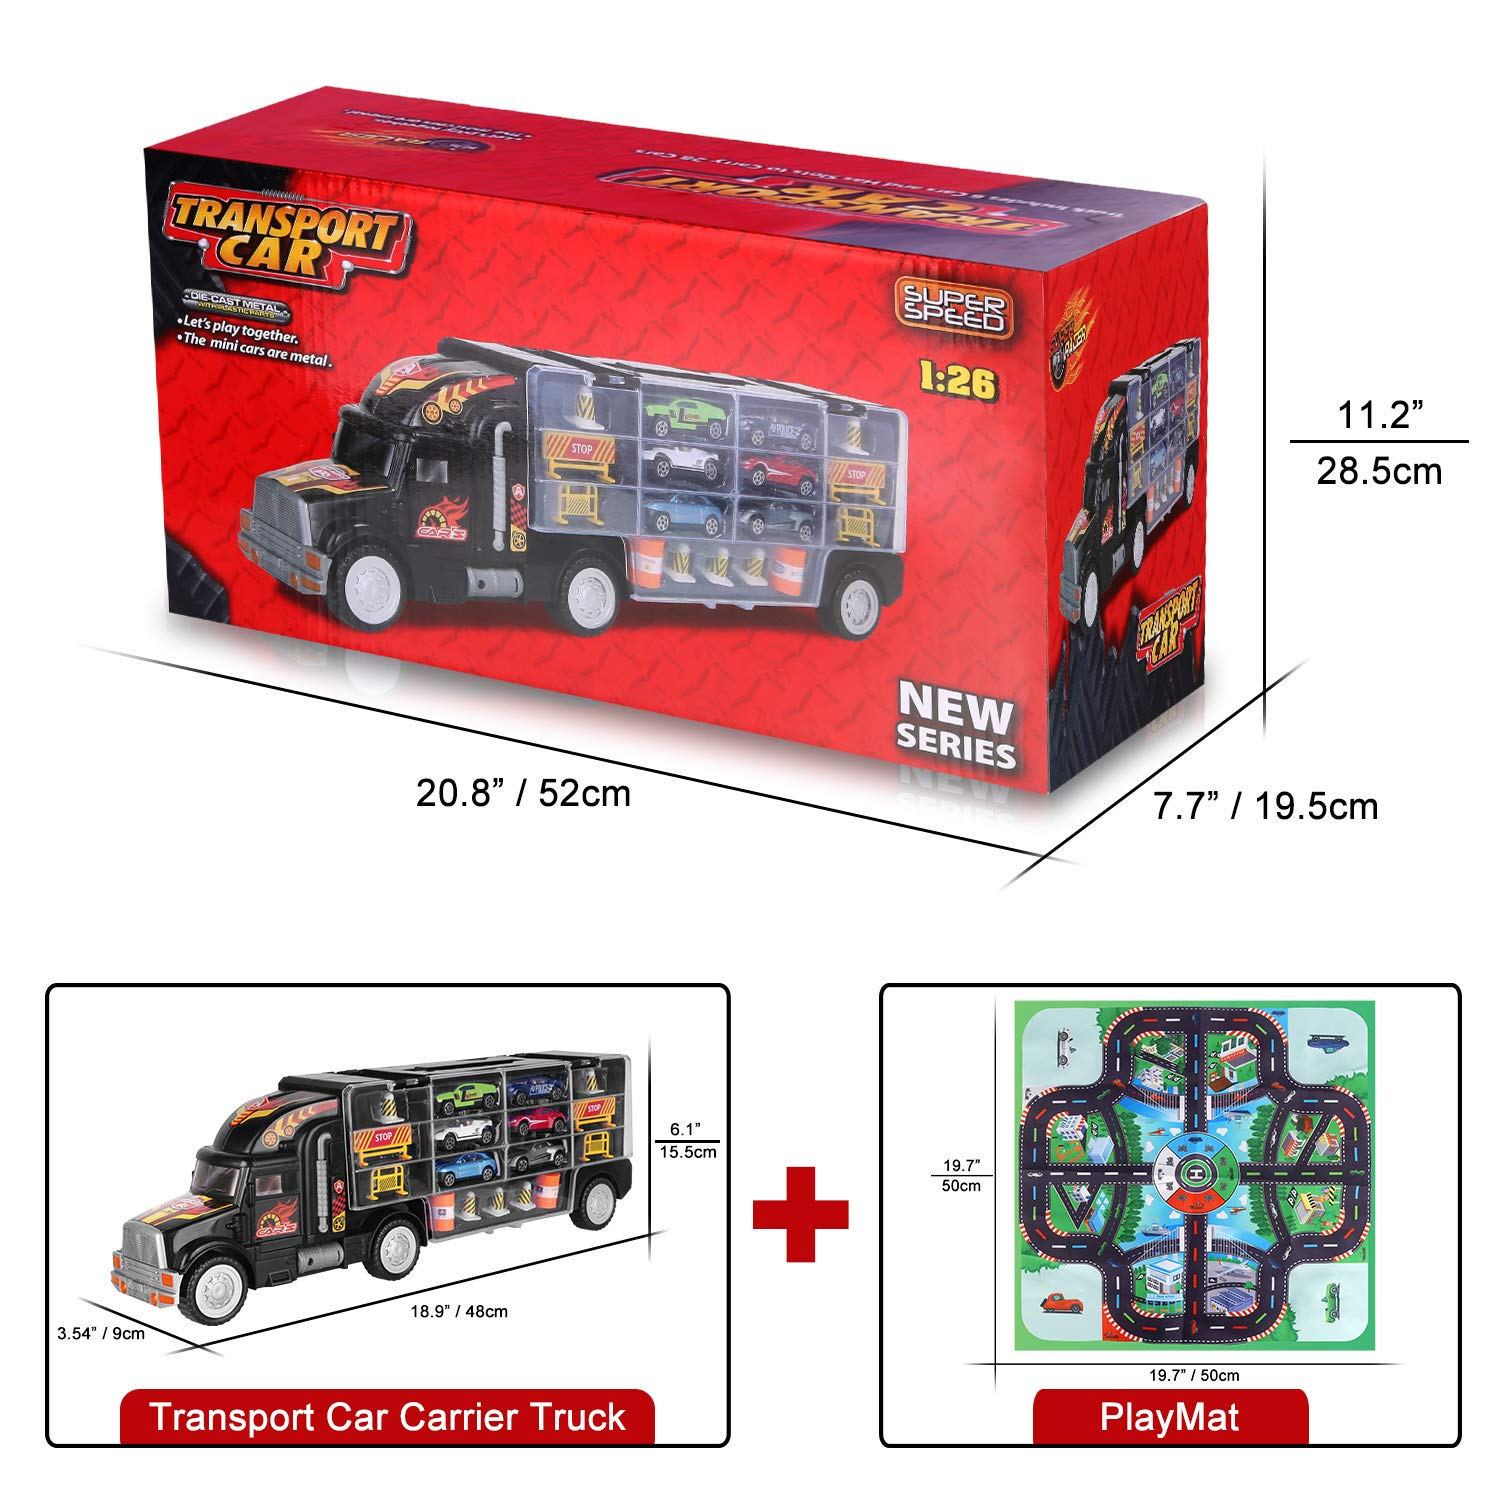 AOKESI Transport Car Carrier Truck Toy Great Gift for Boys Girls Age of 3-10 Year Old (Includes 6 Toy Cars, 2 Construction Signs,7 Road Blocks, 2 Oil Cones, 1 City Map and 1 Dice)